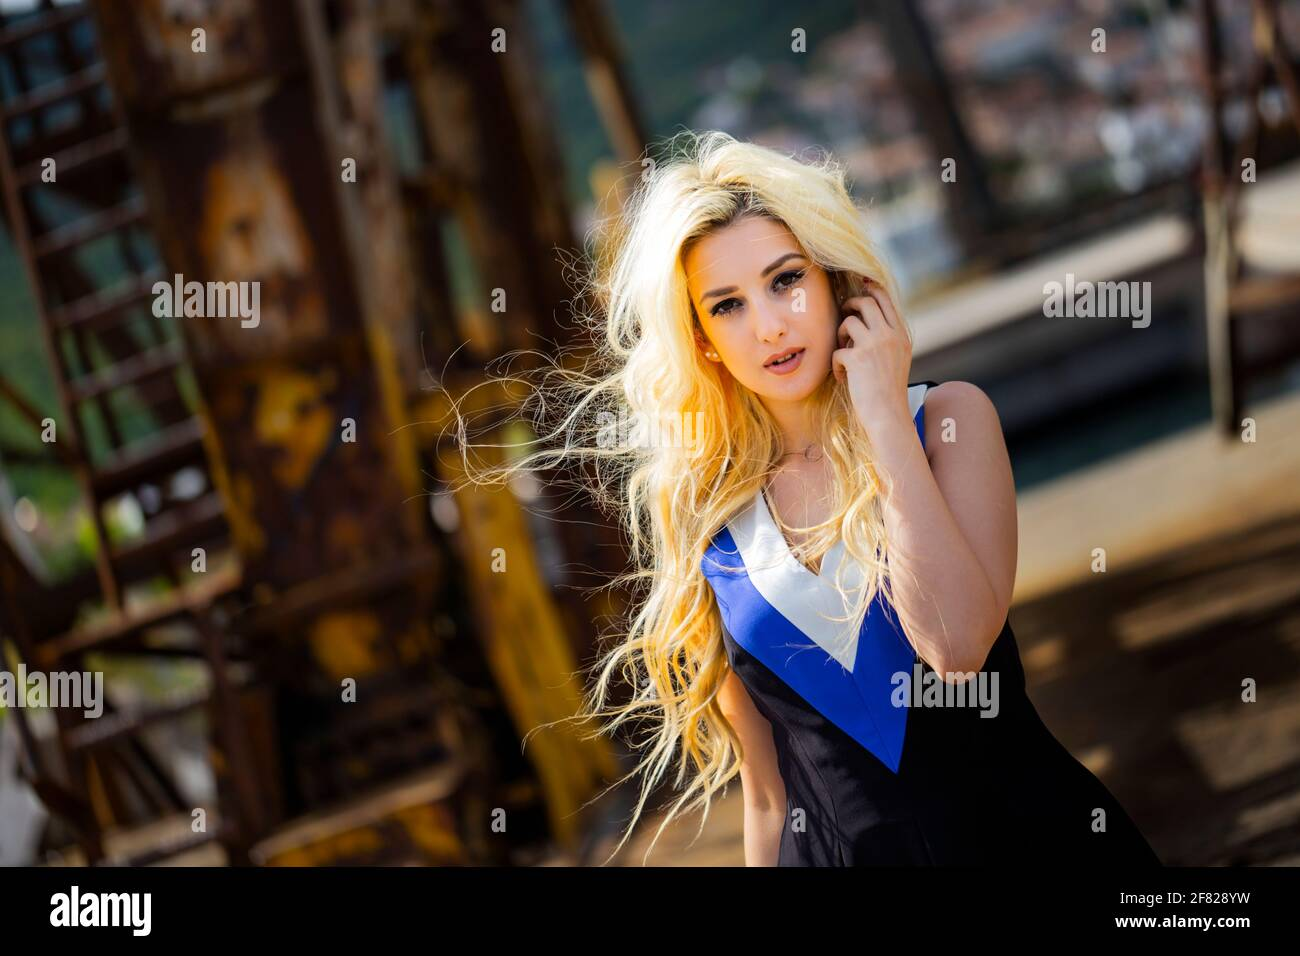 Blonde young woman flying long wavy hair windy blowing wind standing walking walk towards at camera serious industrial industry crane metal framework Stock Photo